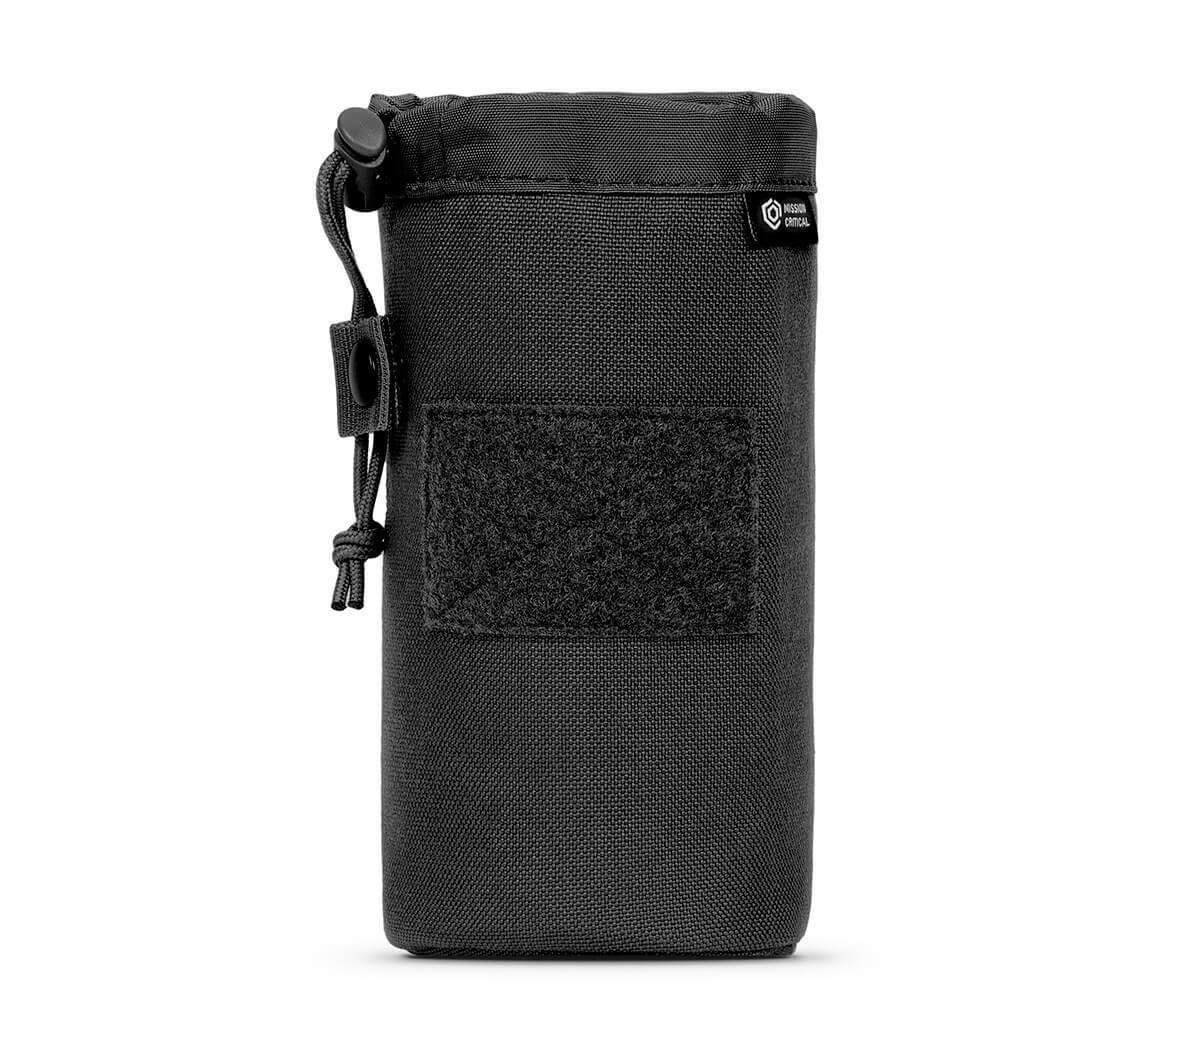 Mission Critical | S.01 Insulated Bottle Holder | Baby Gear for Dads | Designed to Work with Mission Critical Baby Carrier | Black by Mission Critical